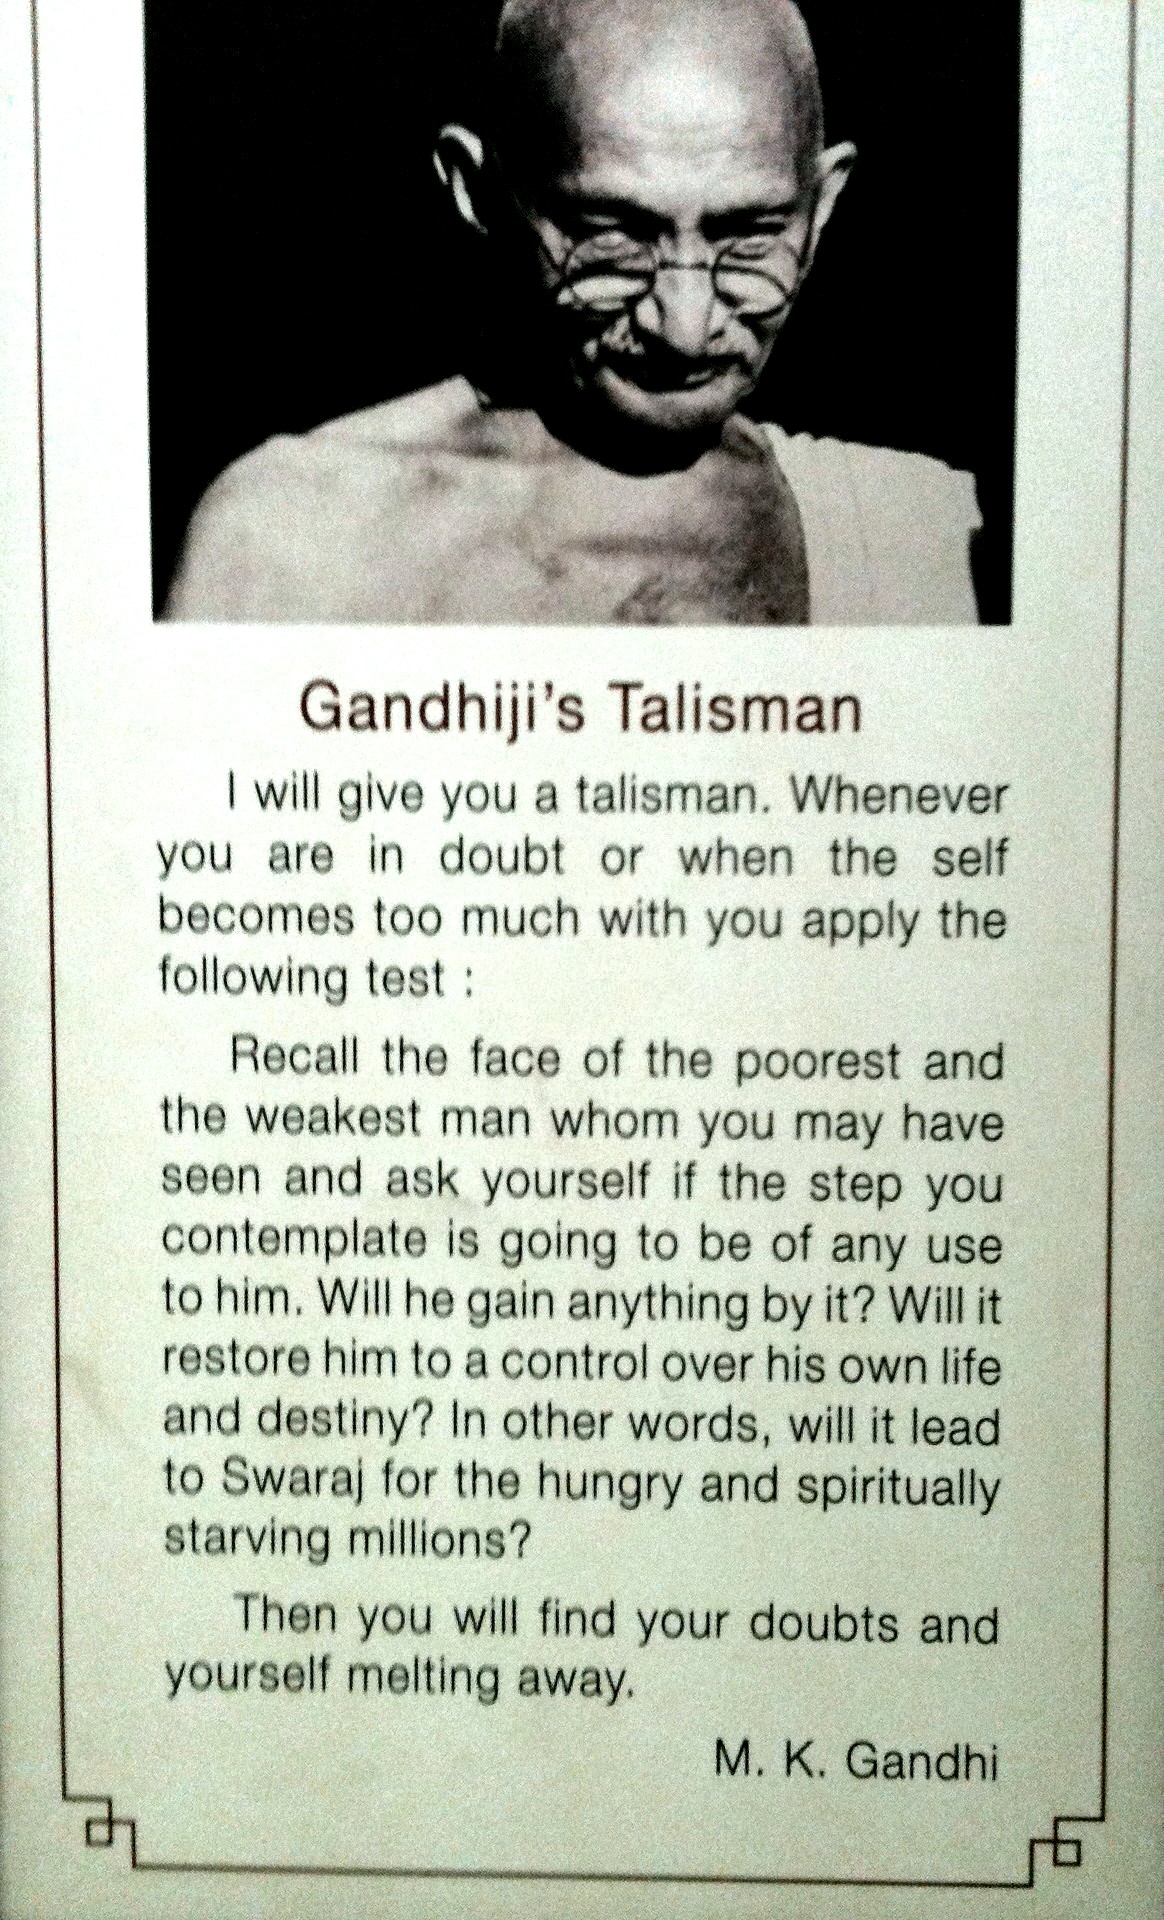 Gandhi's Talisman at Gandhi Memorial Museum, or National Gandhi Museum in New Delhi, India